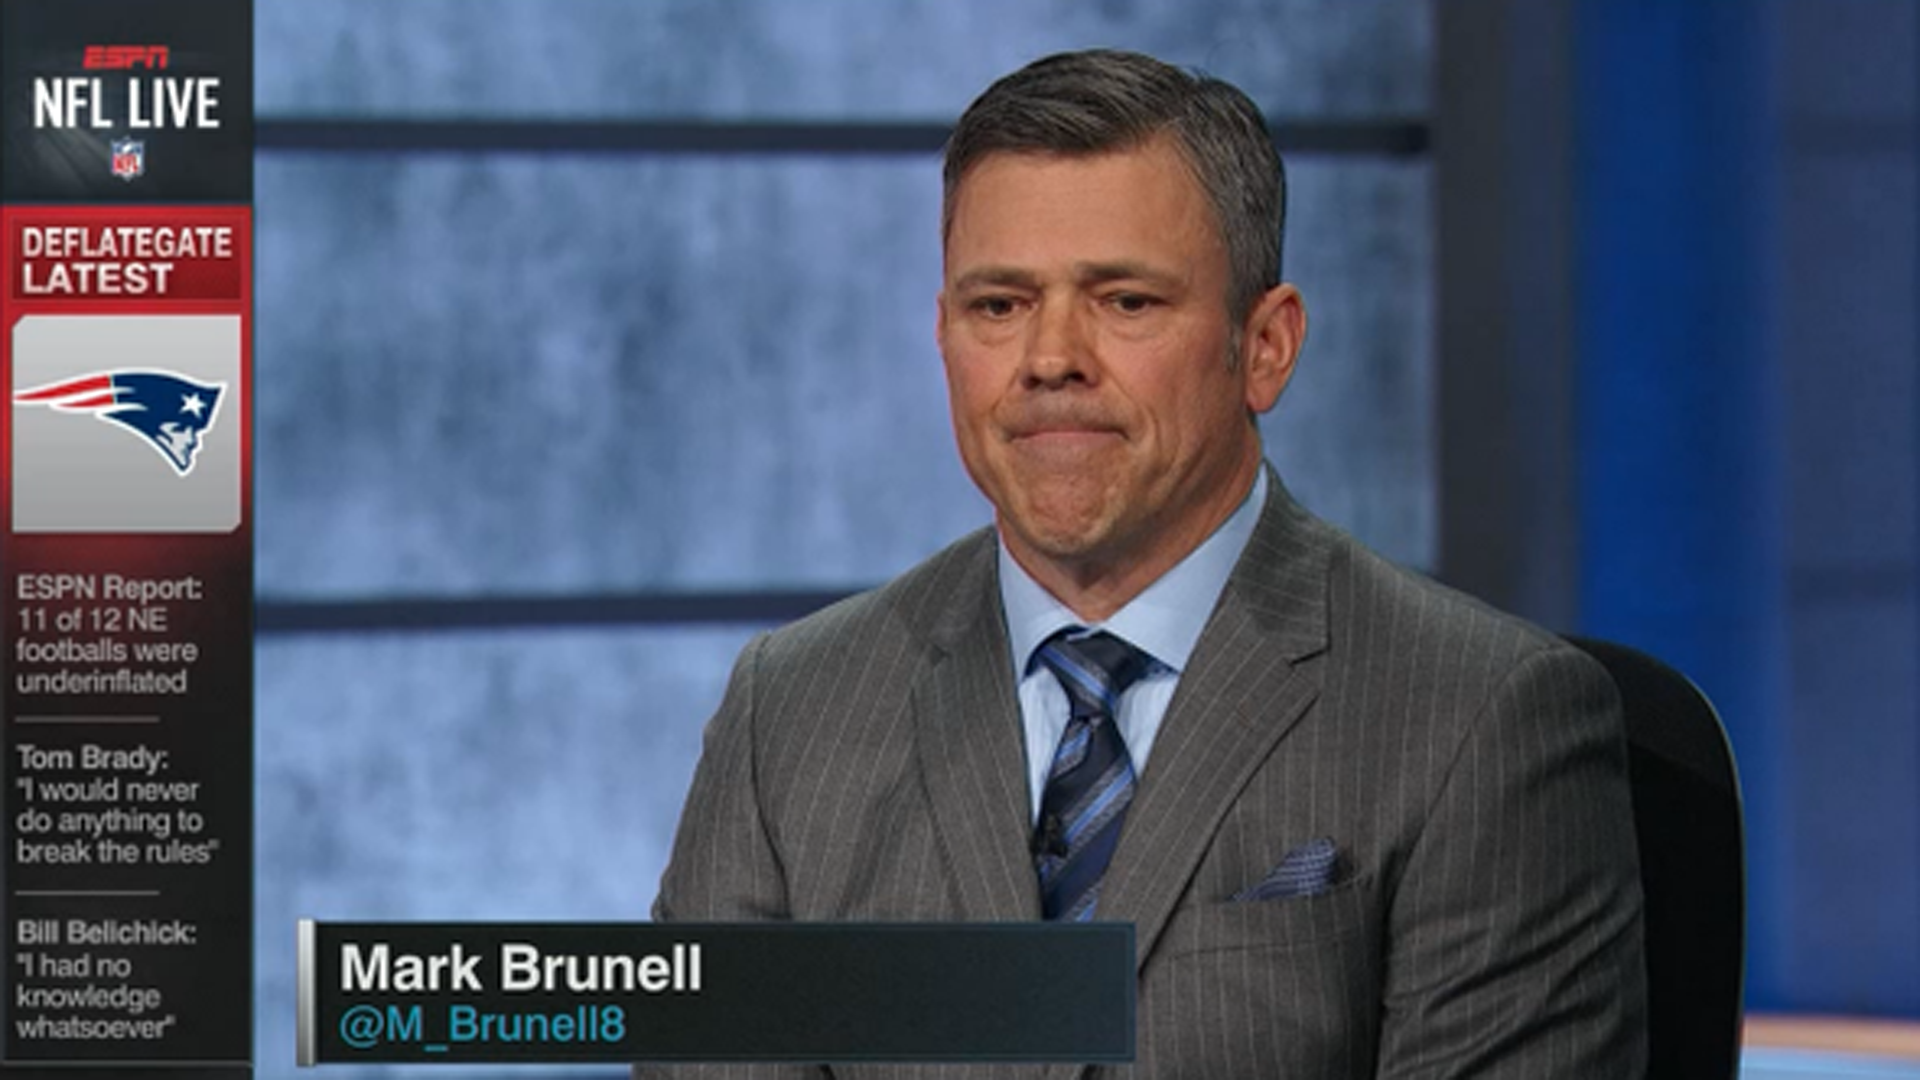 mark-brunell-012215-getty-ftr_1395pmtr2k